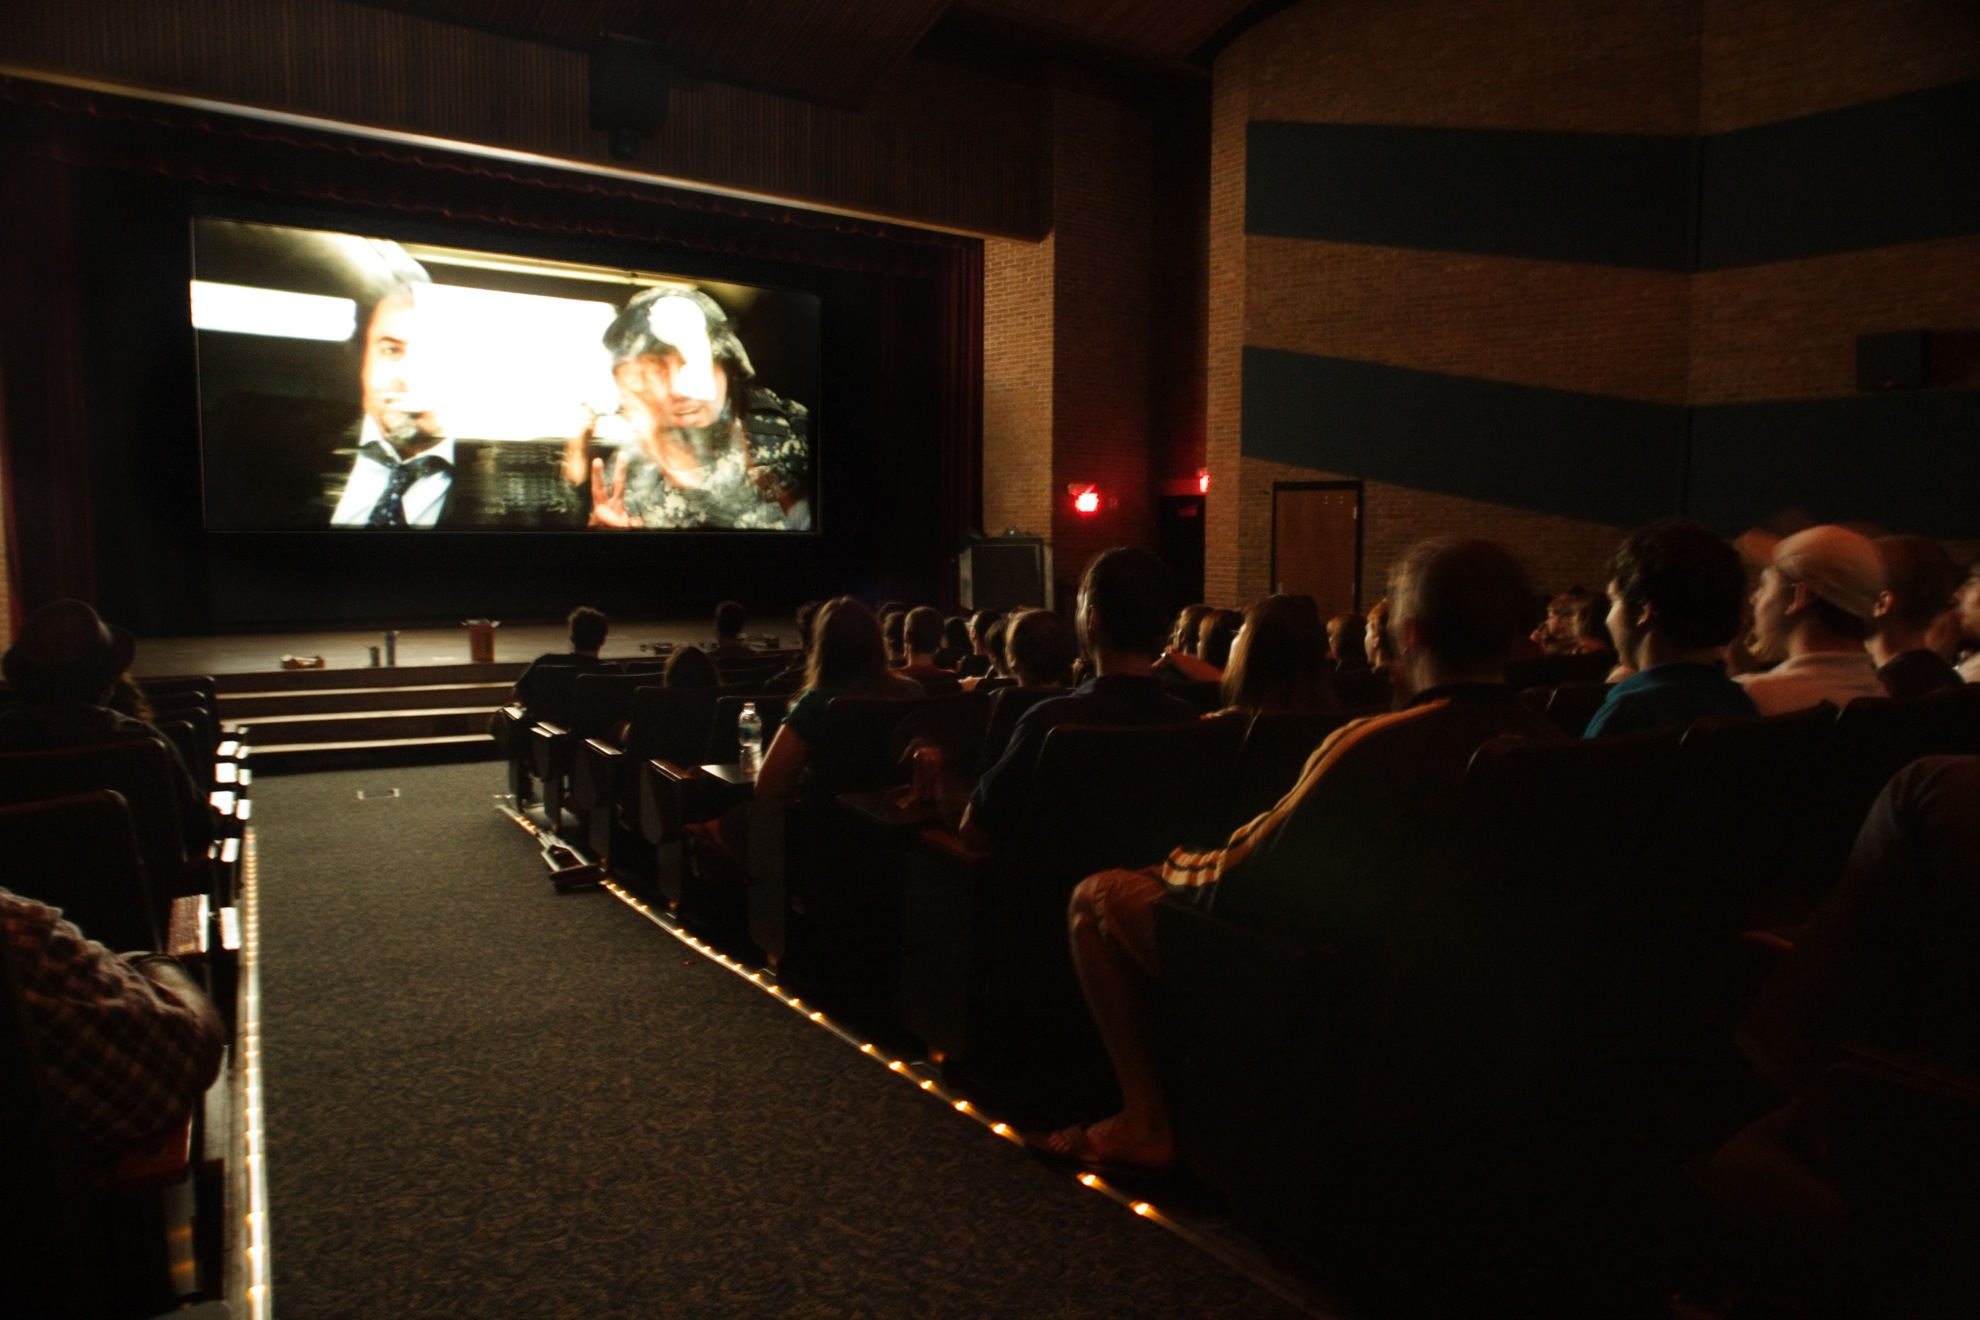 Sarratt Cinema is home to the 